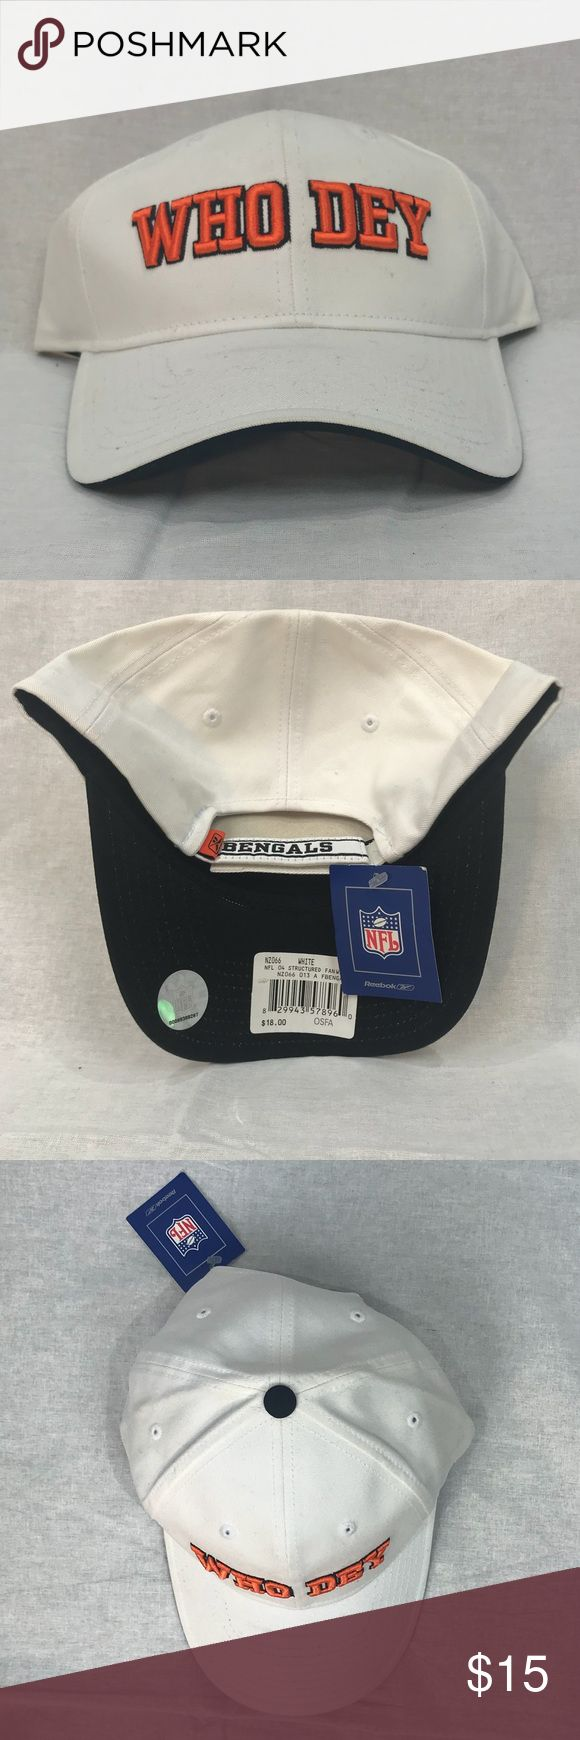 NWT NFL Cincinnati Bengals Cap NWT NFL Cincinnati Bengals Cap by Reebok. White with Orange letters. Adjustable. Official NFL gear. Show your pride! NFL Accessories Hats